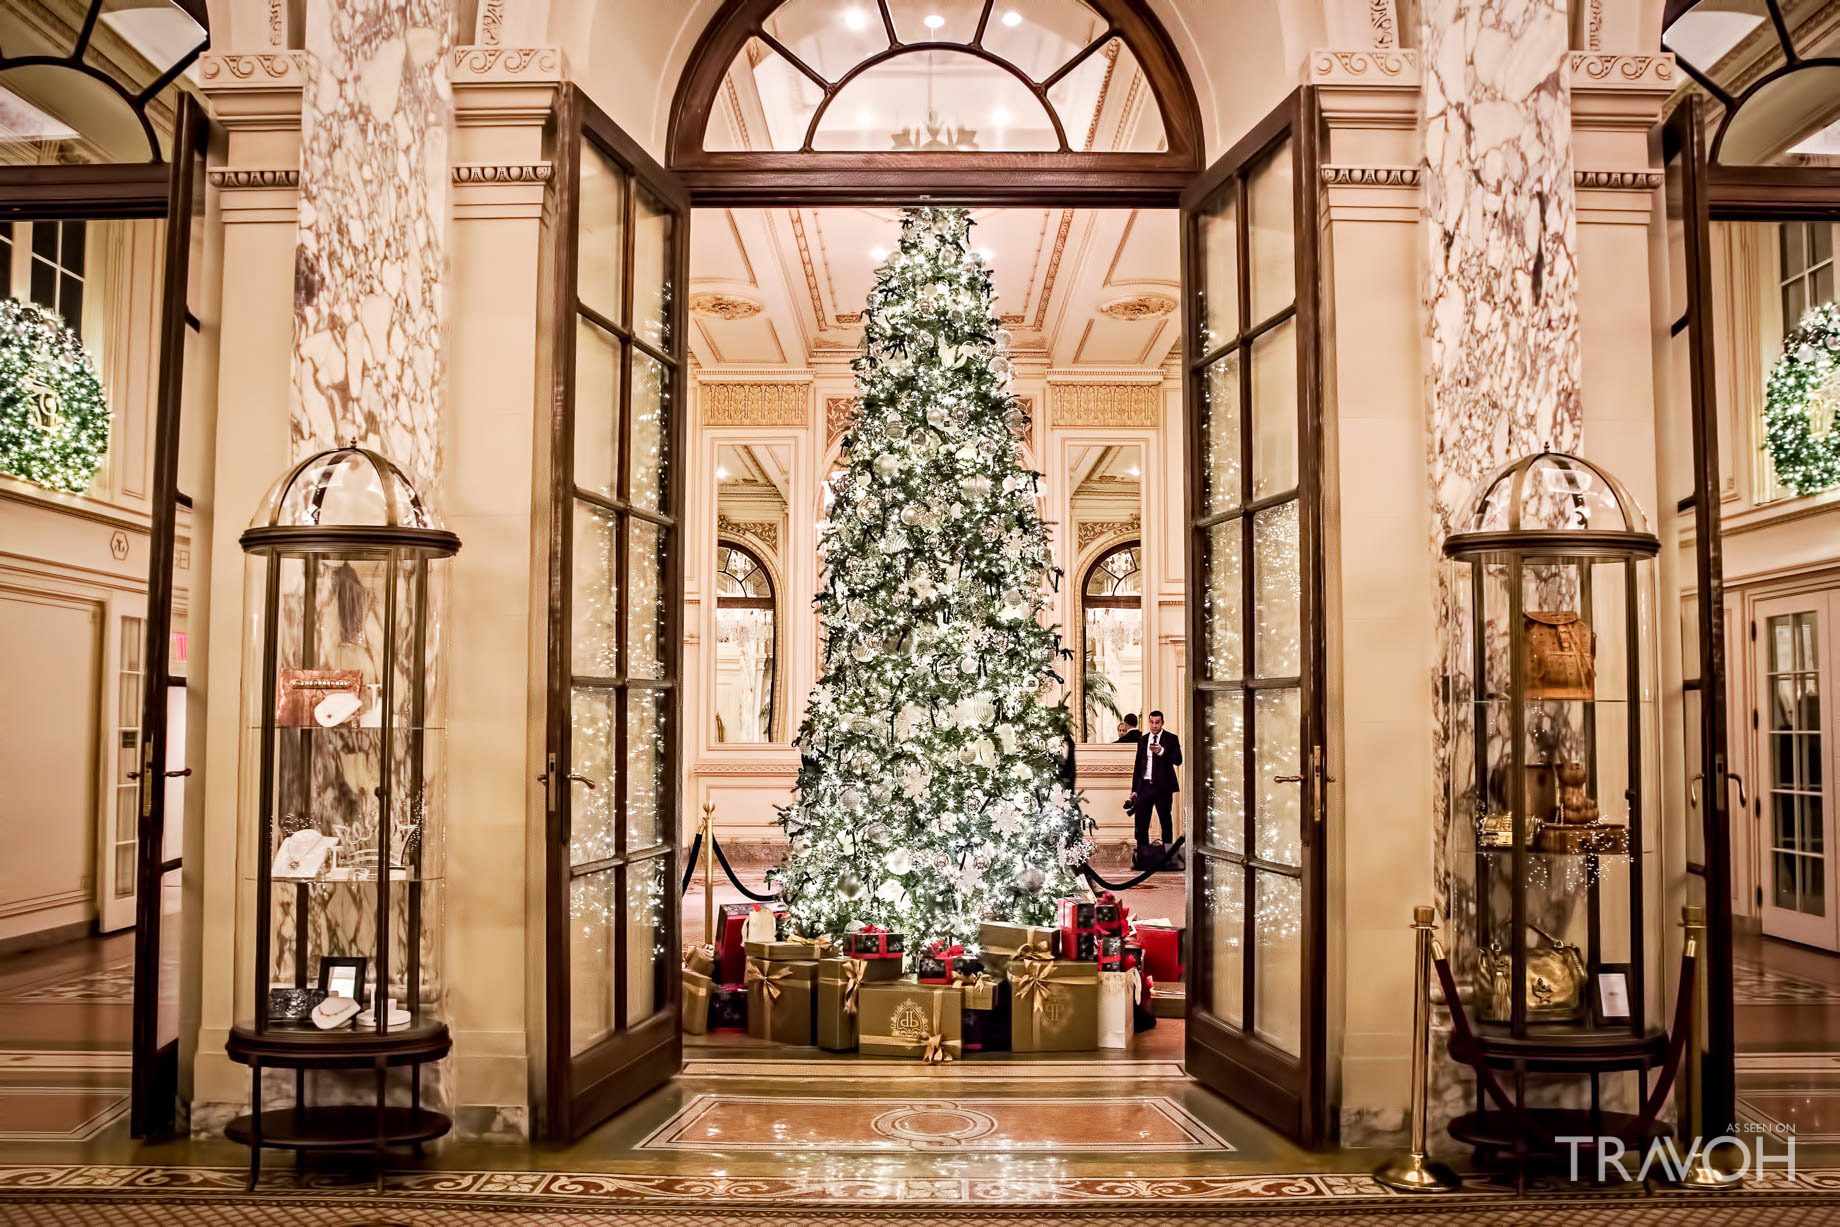 Santa at the Plaza Hotel - 768 5th Ave, New York, NY, USA